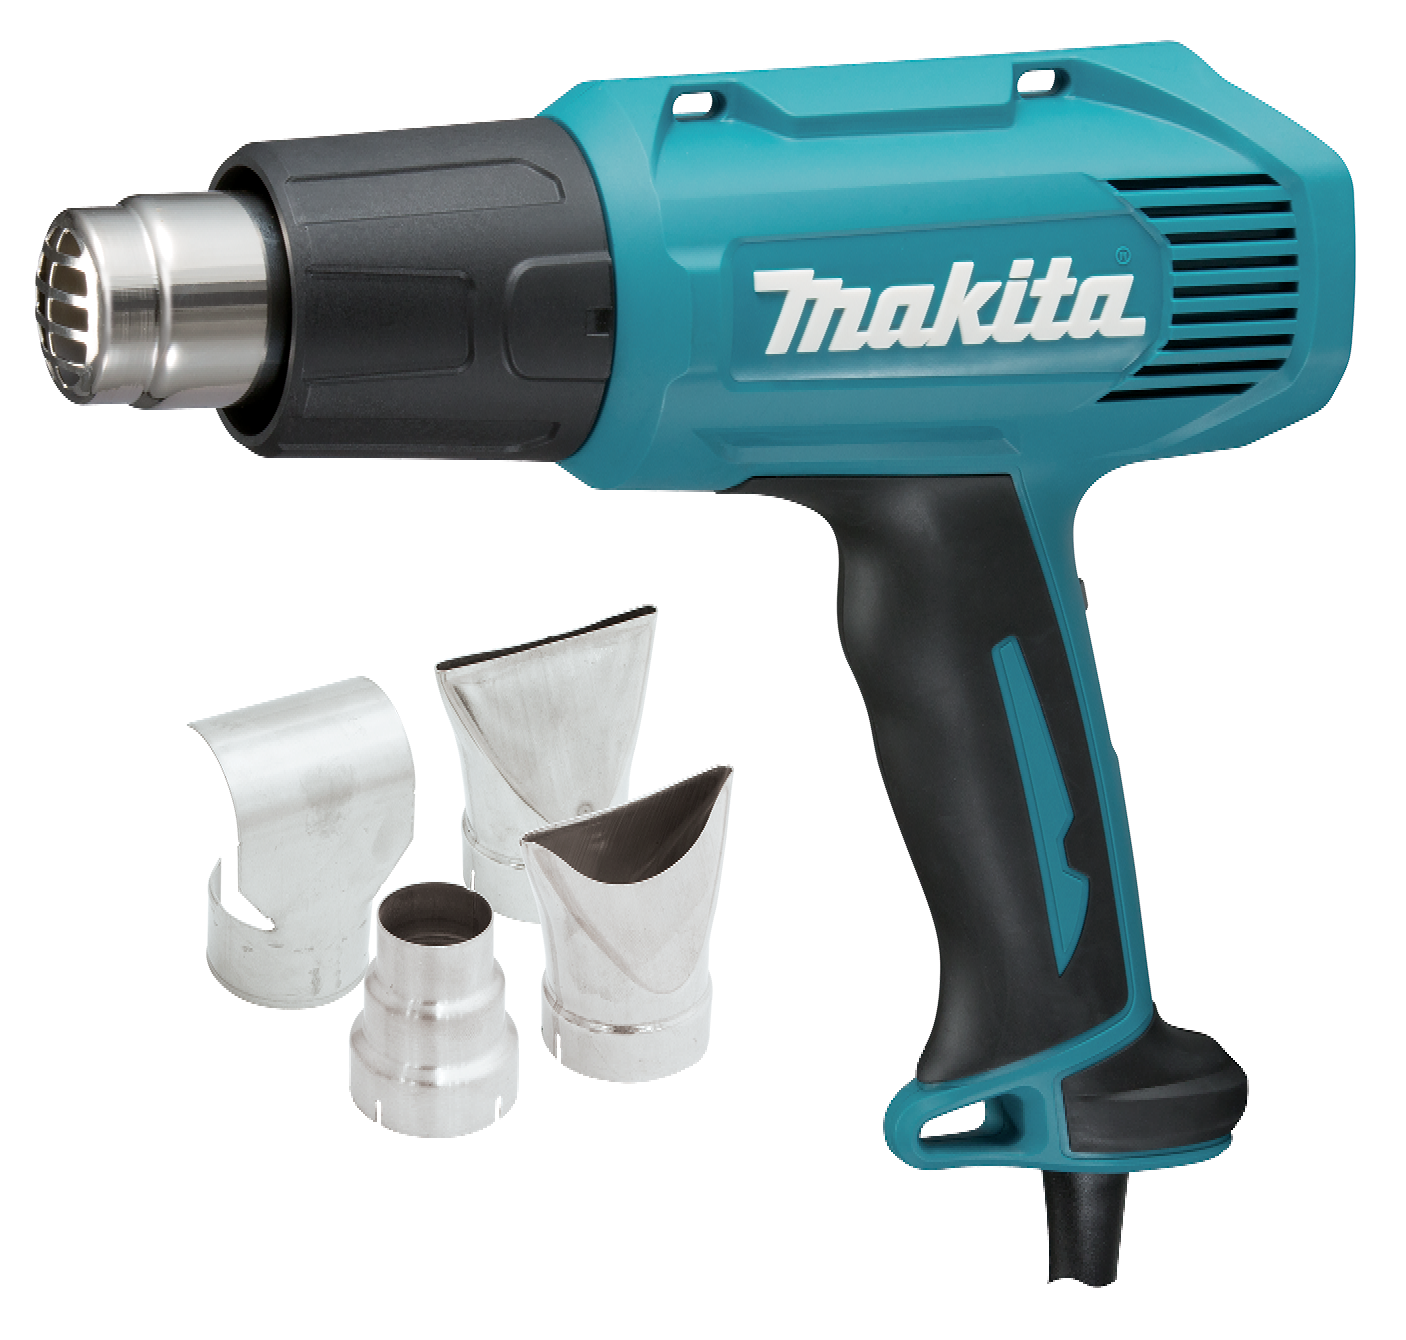 Makita Makita Makita HEAT GUN KIT WITH ACCESSORIES HG6030KIT 1800W 600°C Slide Switch c5a281